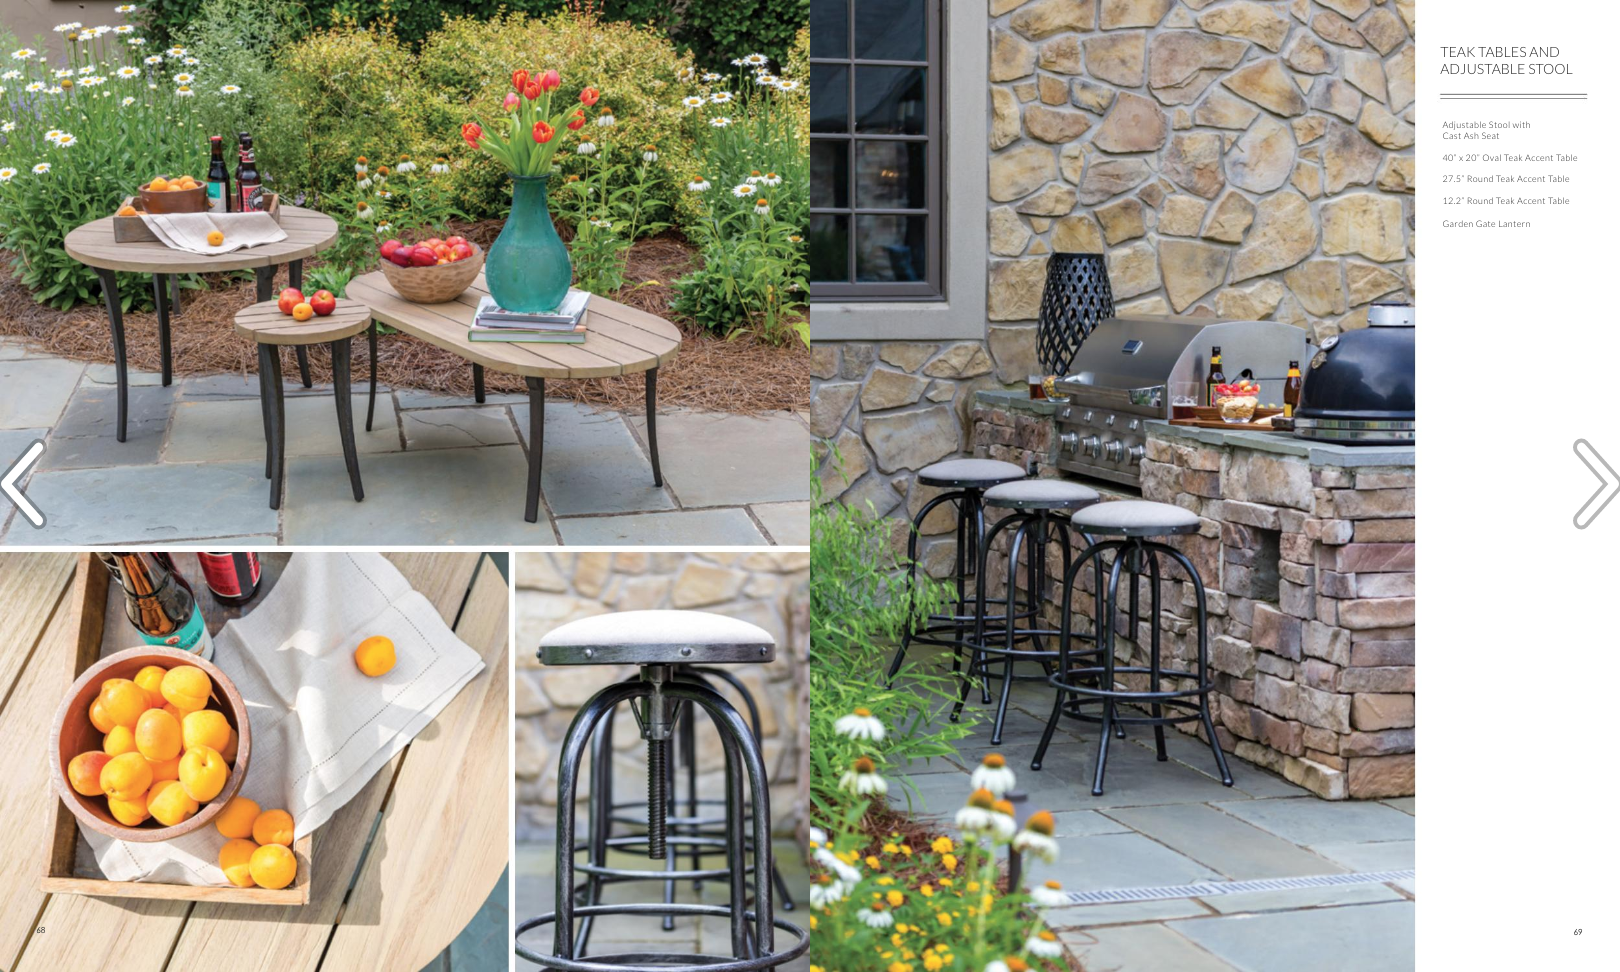 Catalog layout featuring their outdoor adjustable stools and teak tables